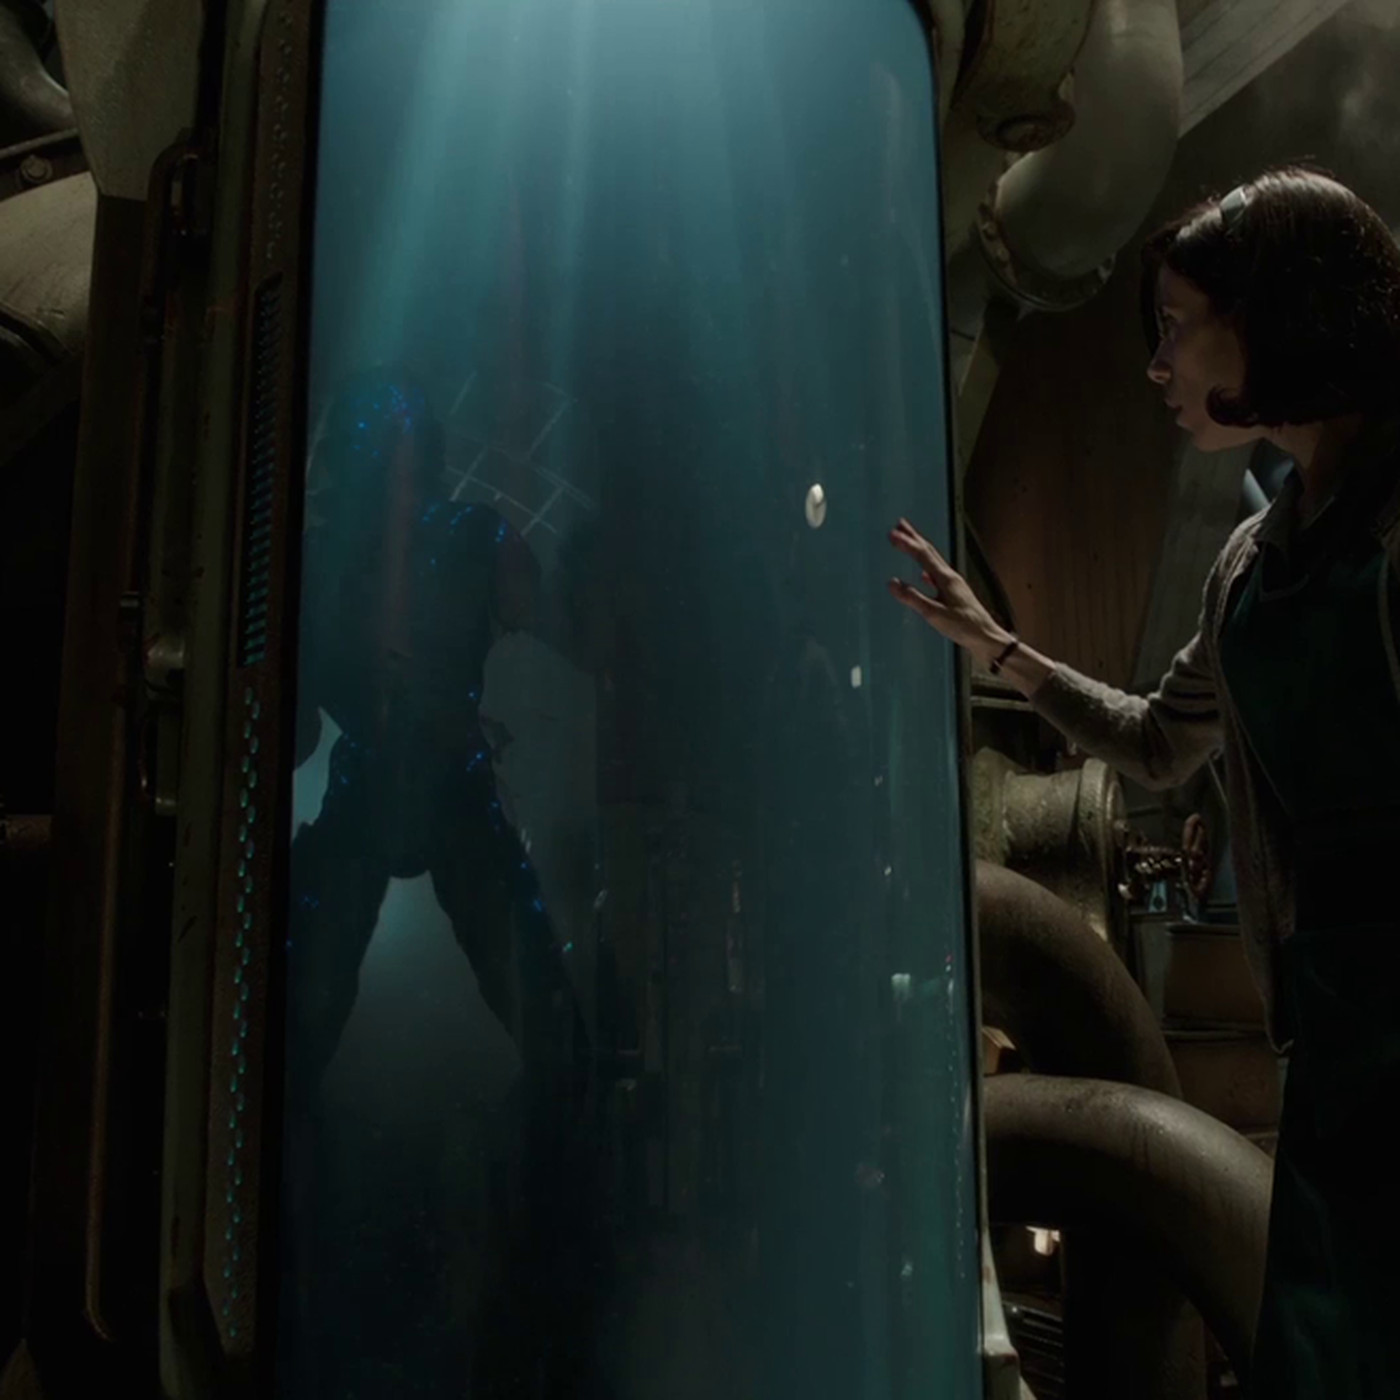 Guillermo del Toro's The Shape of Water is a sentimental fish